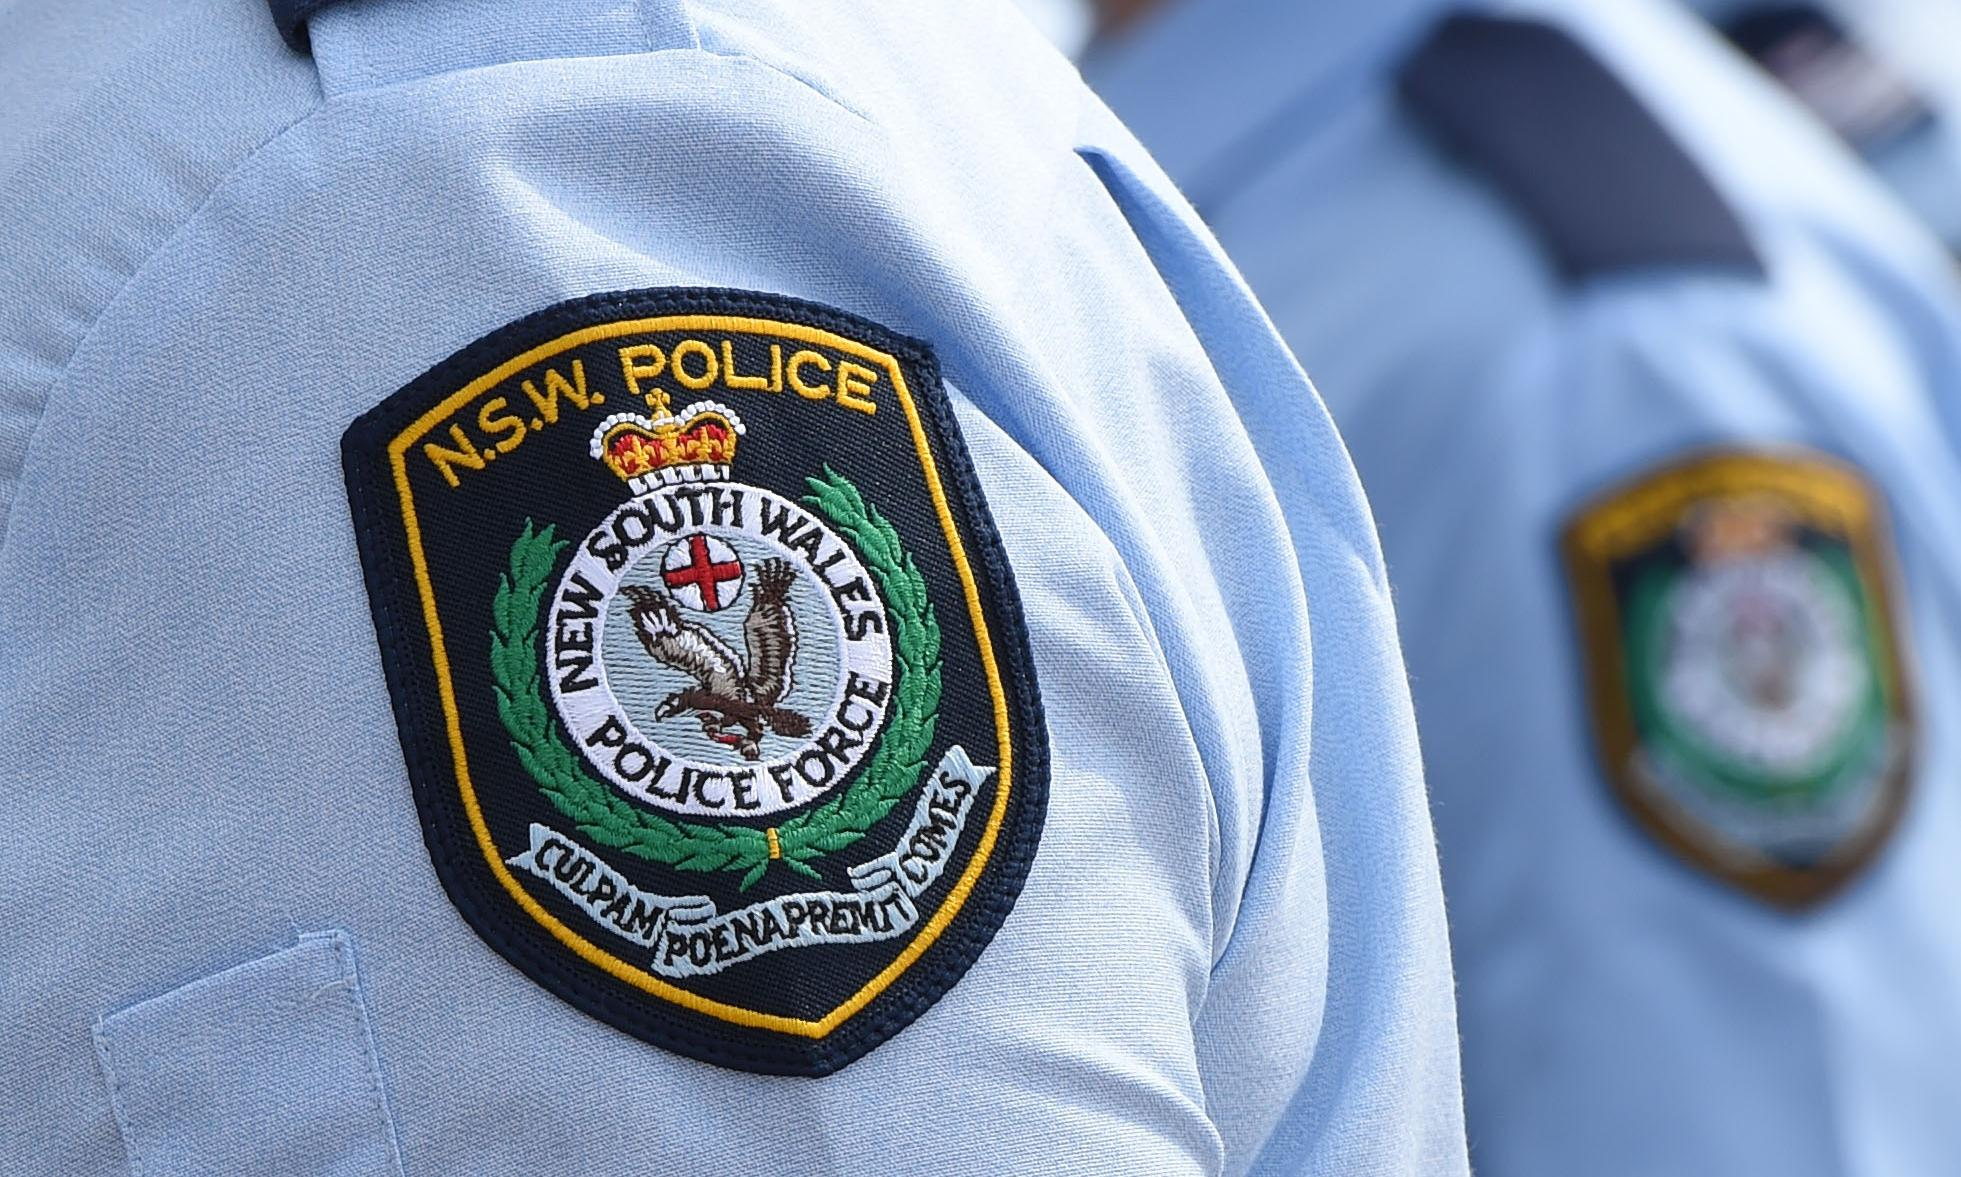 Police breached rules in fatal Sydney car chase, coroner finds